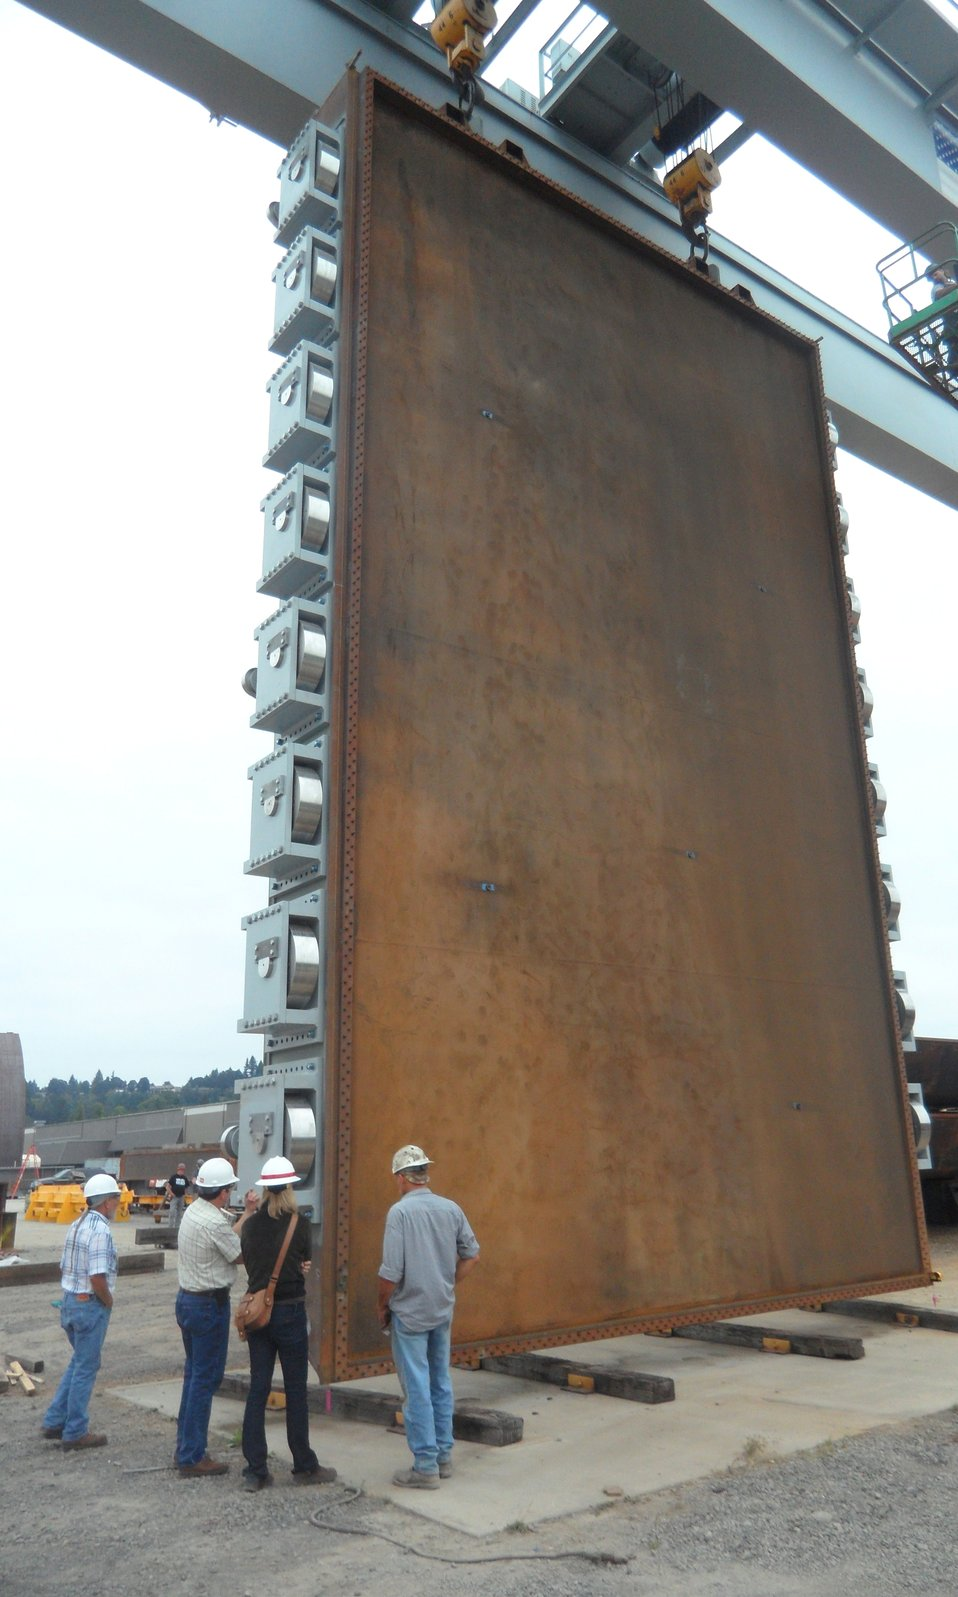 Giant Folsom spillway gates nearly ready for 600-mile journey to dam